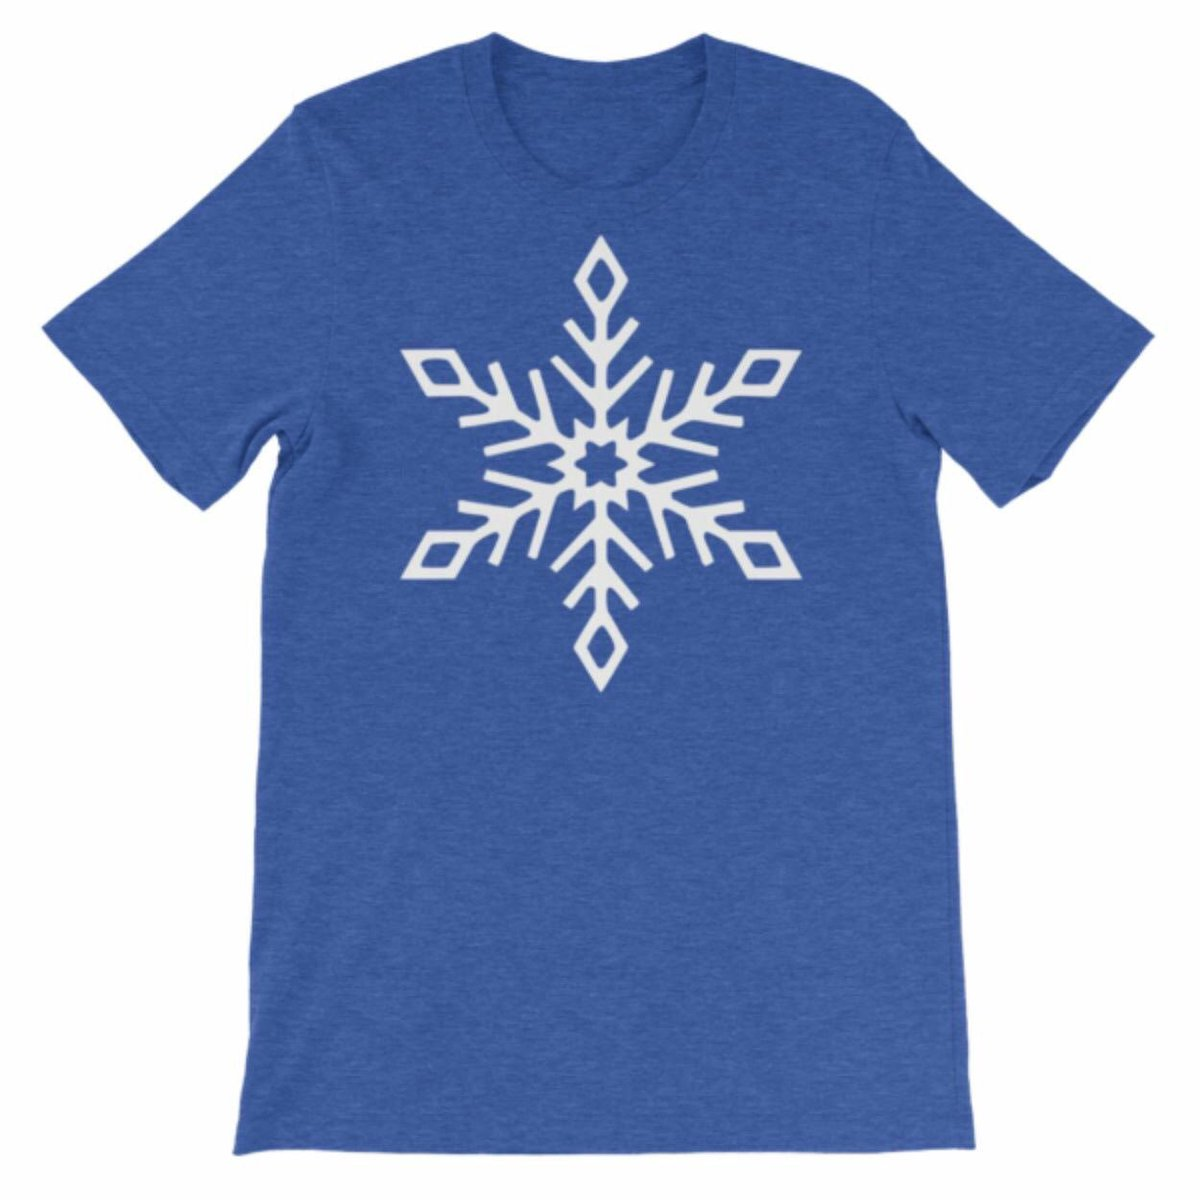 Stay safe & warm in all this #chicagosnow & freezing temps 🥶 . https://t.co/erDP7Vc5E8 . https://t.co/Maym0OrOSg for ladies cut . #allographictees #chicago #ChicagoWeather #chitown #snowday #itscoldoutside #itscoldhere #chicagowinter #chicagolife #snowflake https://t.co/p1mZ2AToob